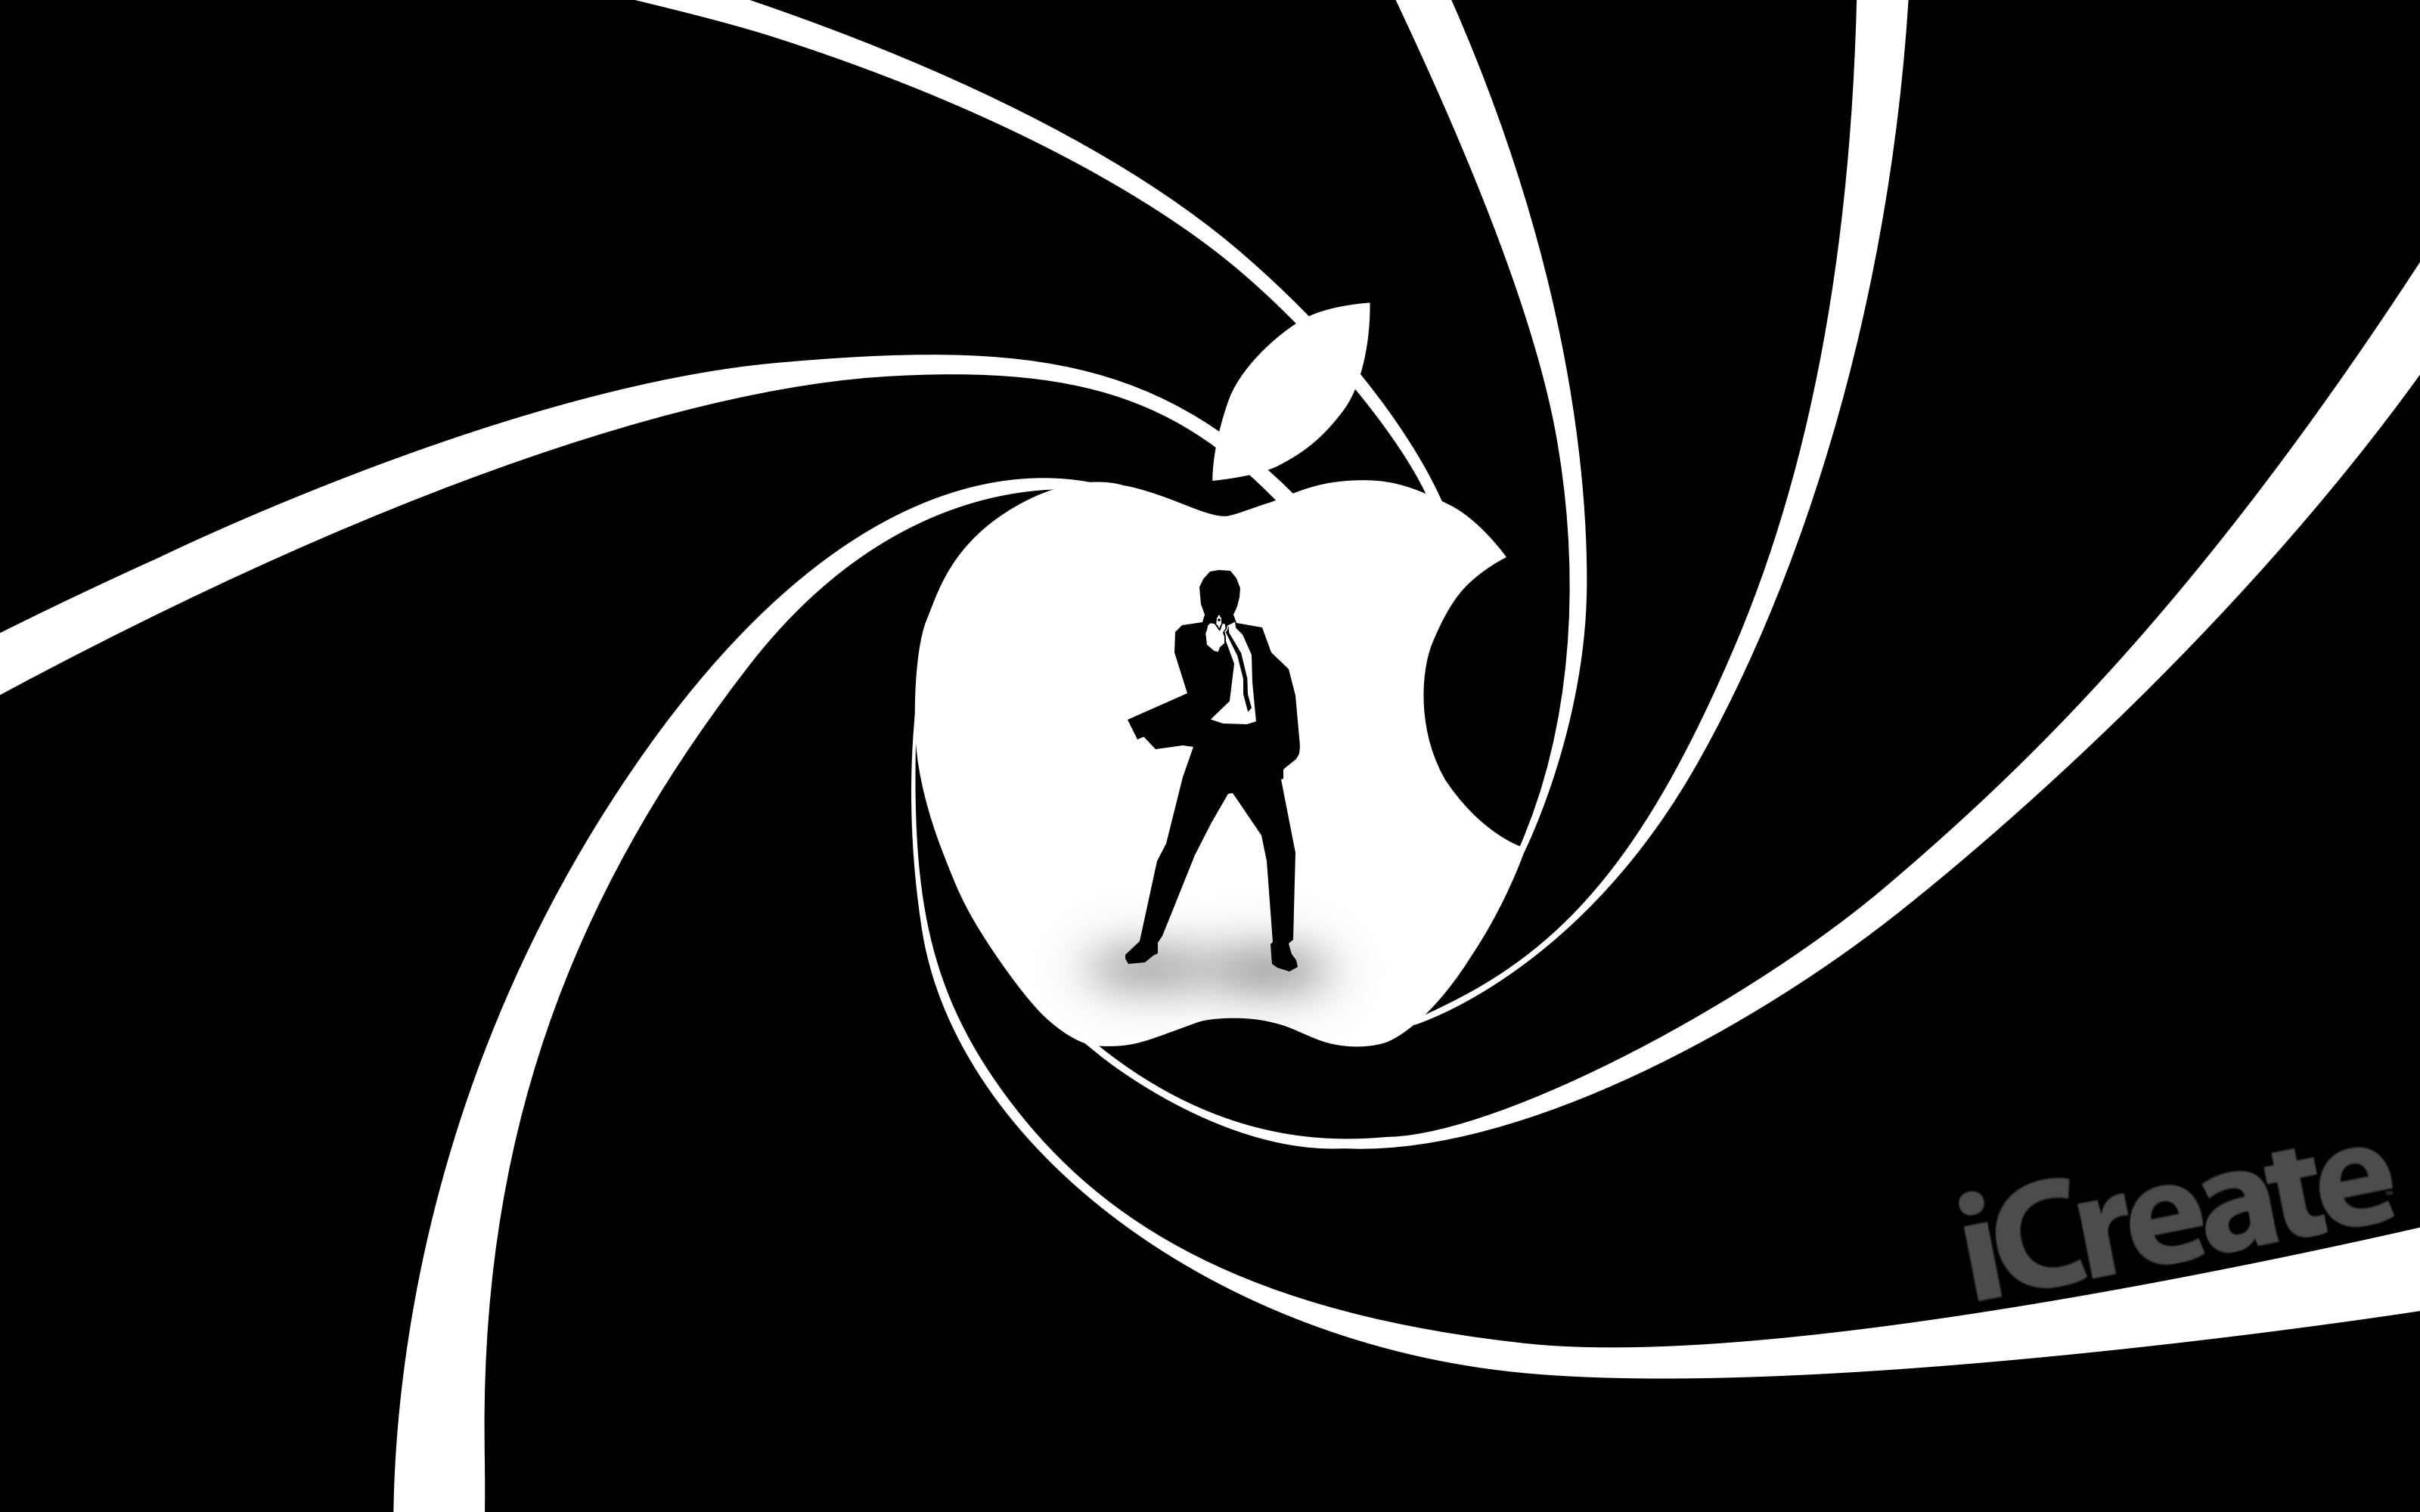 James bond iphone wallpaper wallpapersafari - James bond images hd ...